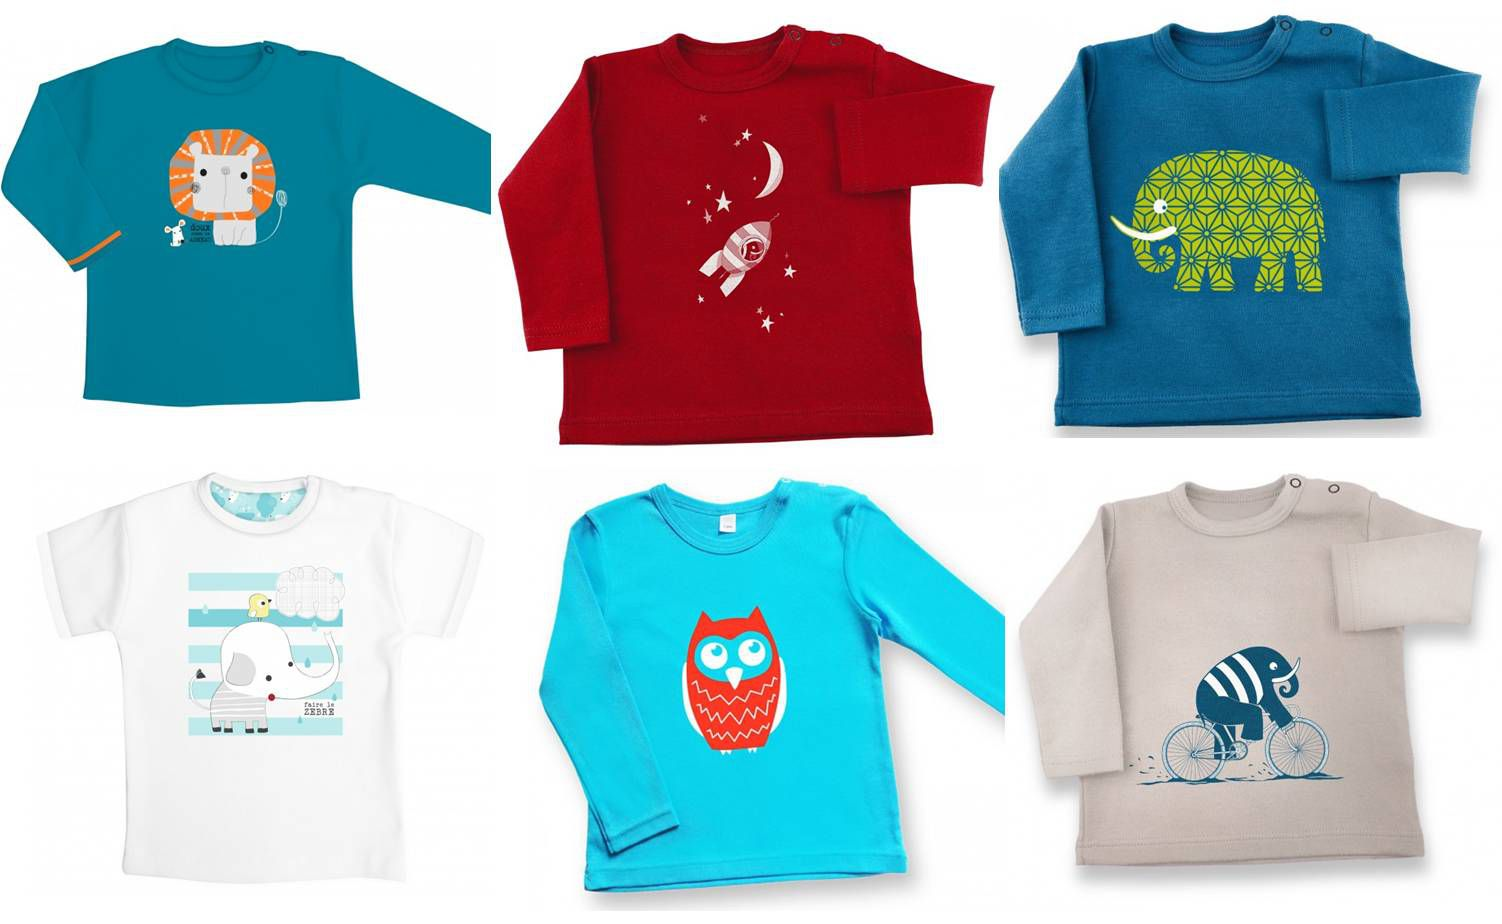 L'obsession des T-shirts animaux !